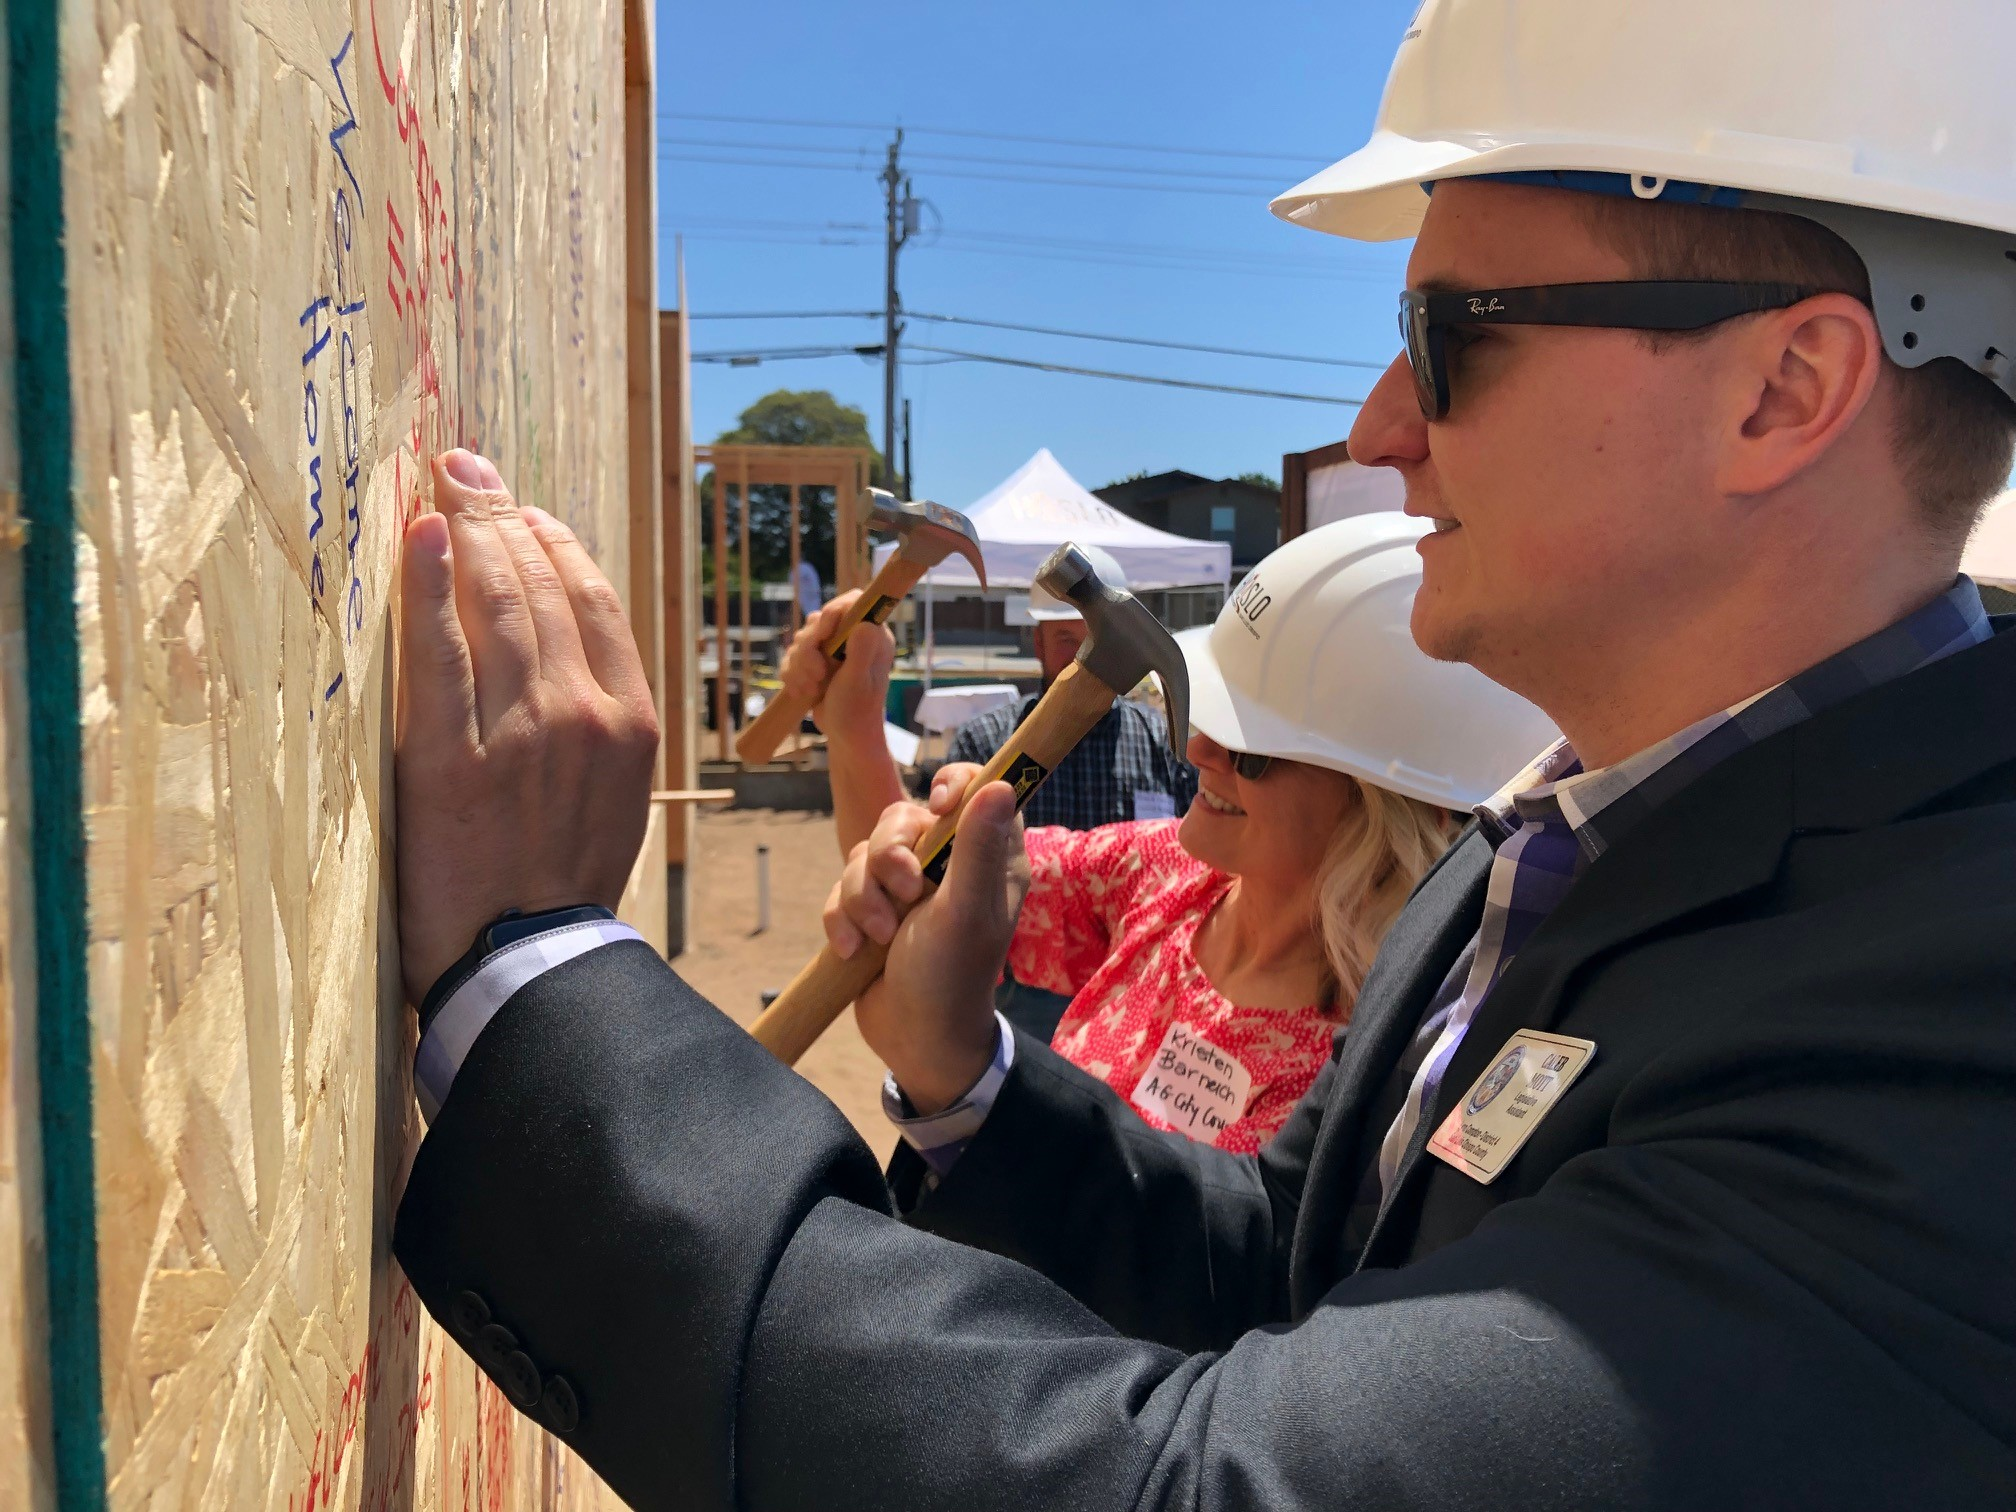 "Arroyo Grande Mayor Pro Tem Kristen Barneich and Caleb Mott, Legislative Assistant to District 4 County Supervisor Lynn Compton, hammer the ""Best Wishes"" board onto the building."